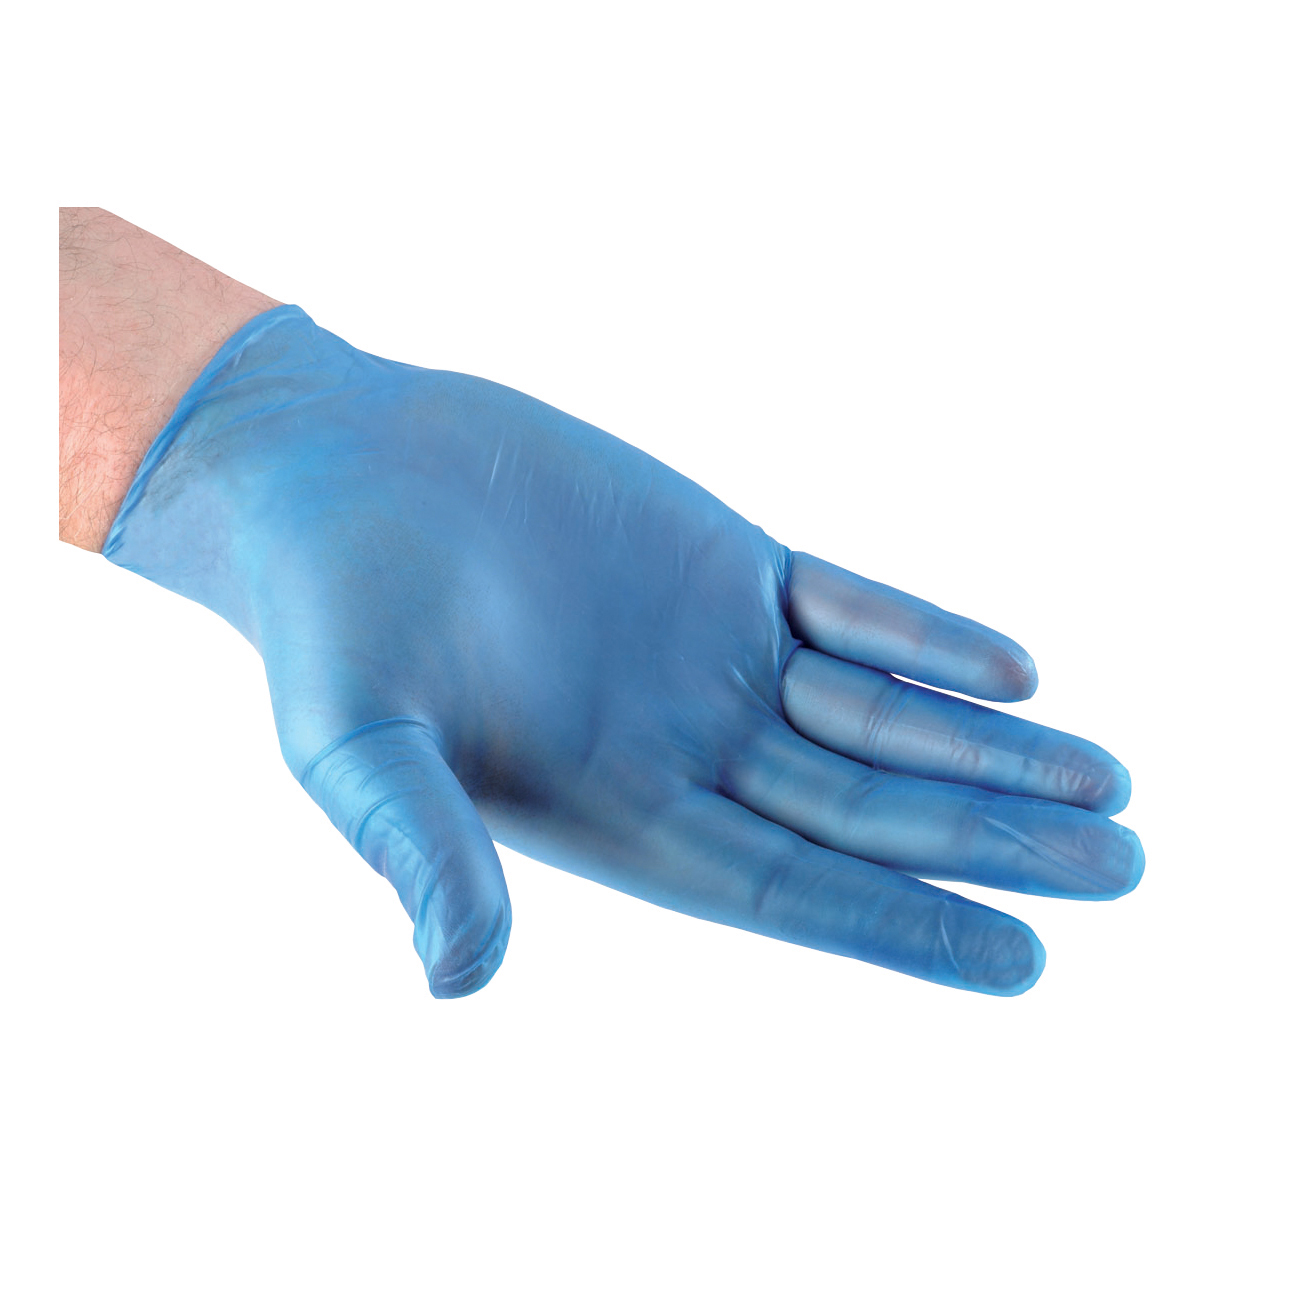 Disposable Gloves Vinyl Powder Free Medium Blue [Pack 100]